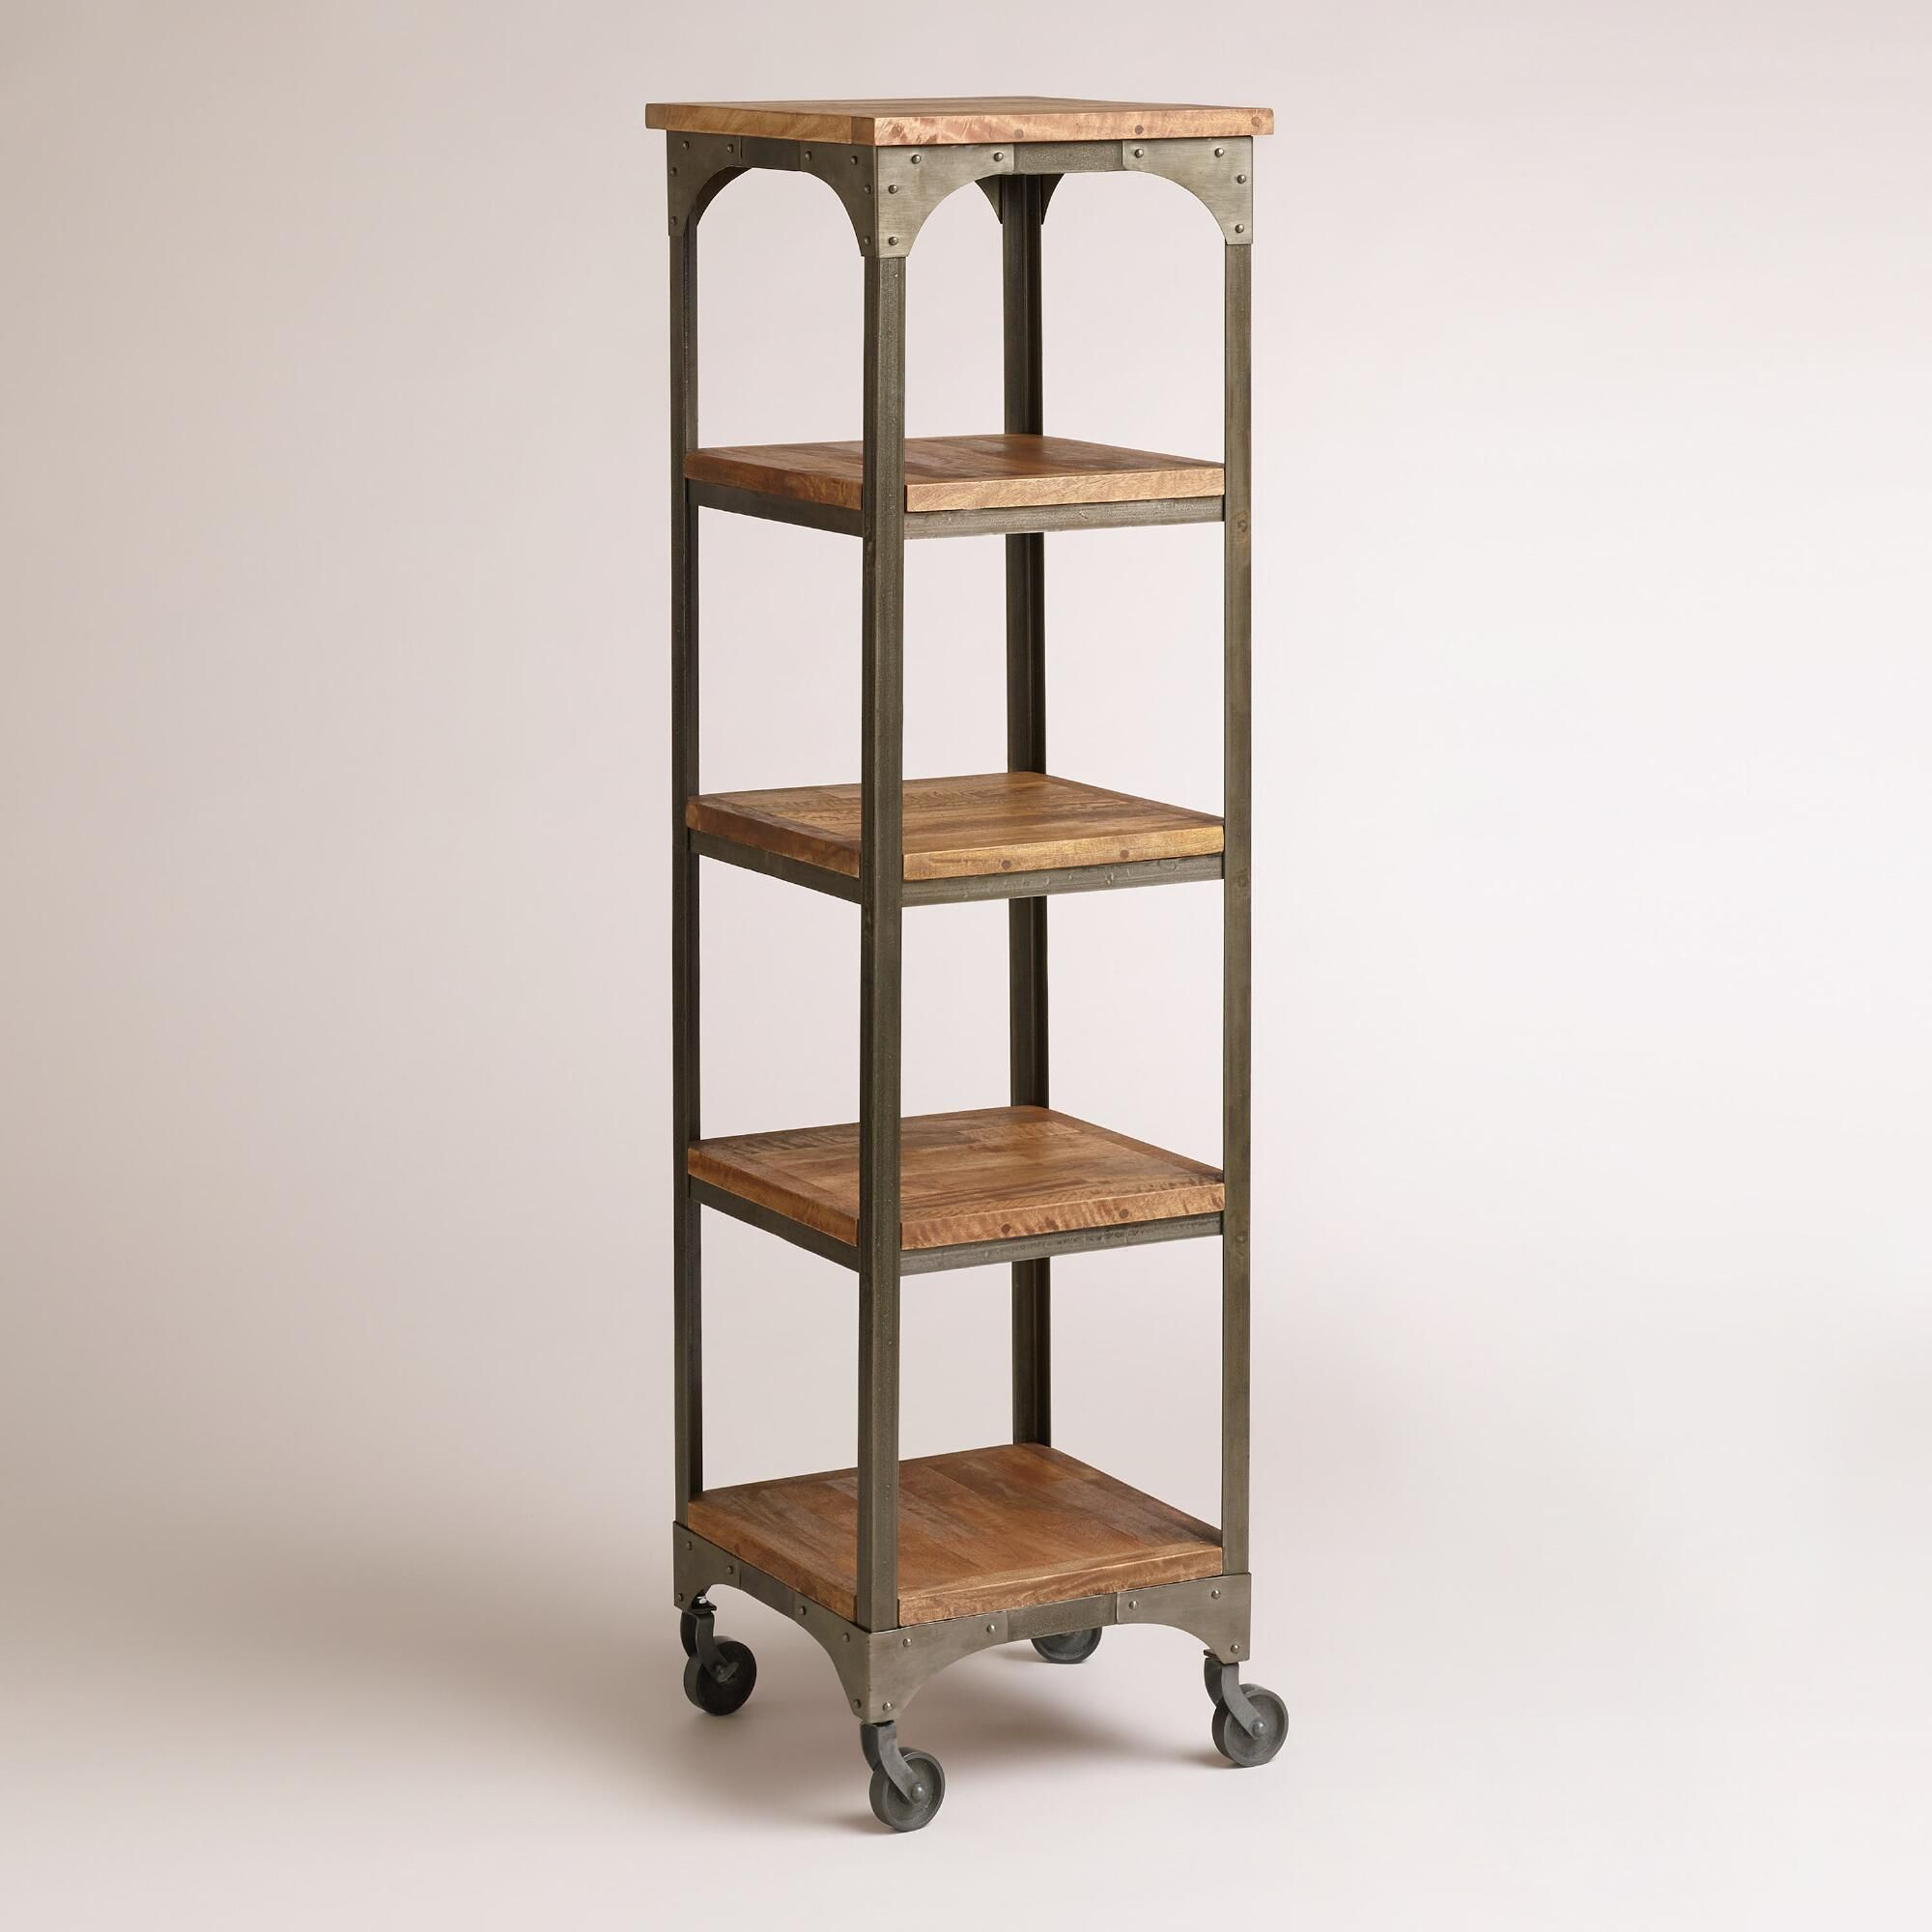 Our Four Shelf Tower Gives Your Space A Rustic Industrial Metal Wood Aiden Shelves Kitchen Shelf In 2020 Rustic Bookcase Industrial Chic Furniture Wood And Metal